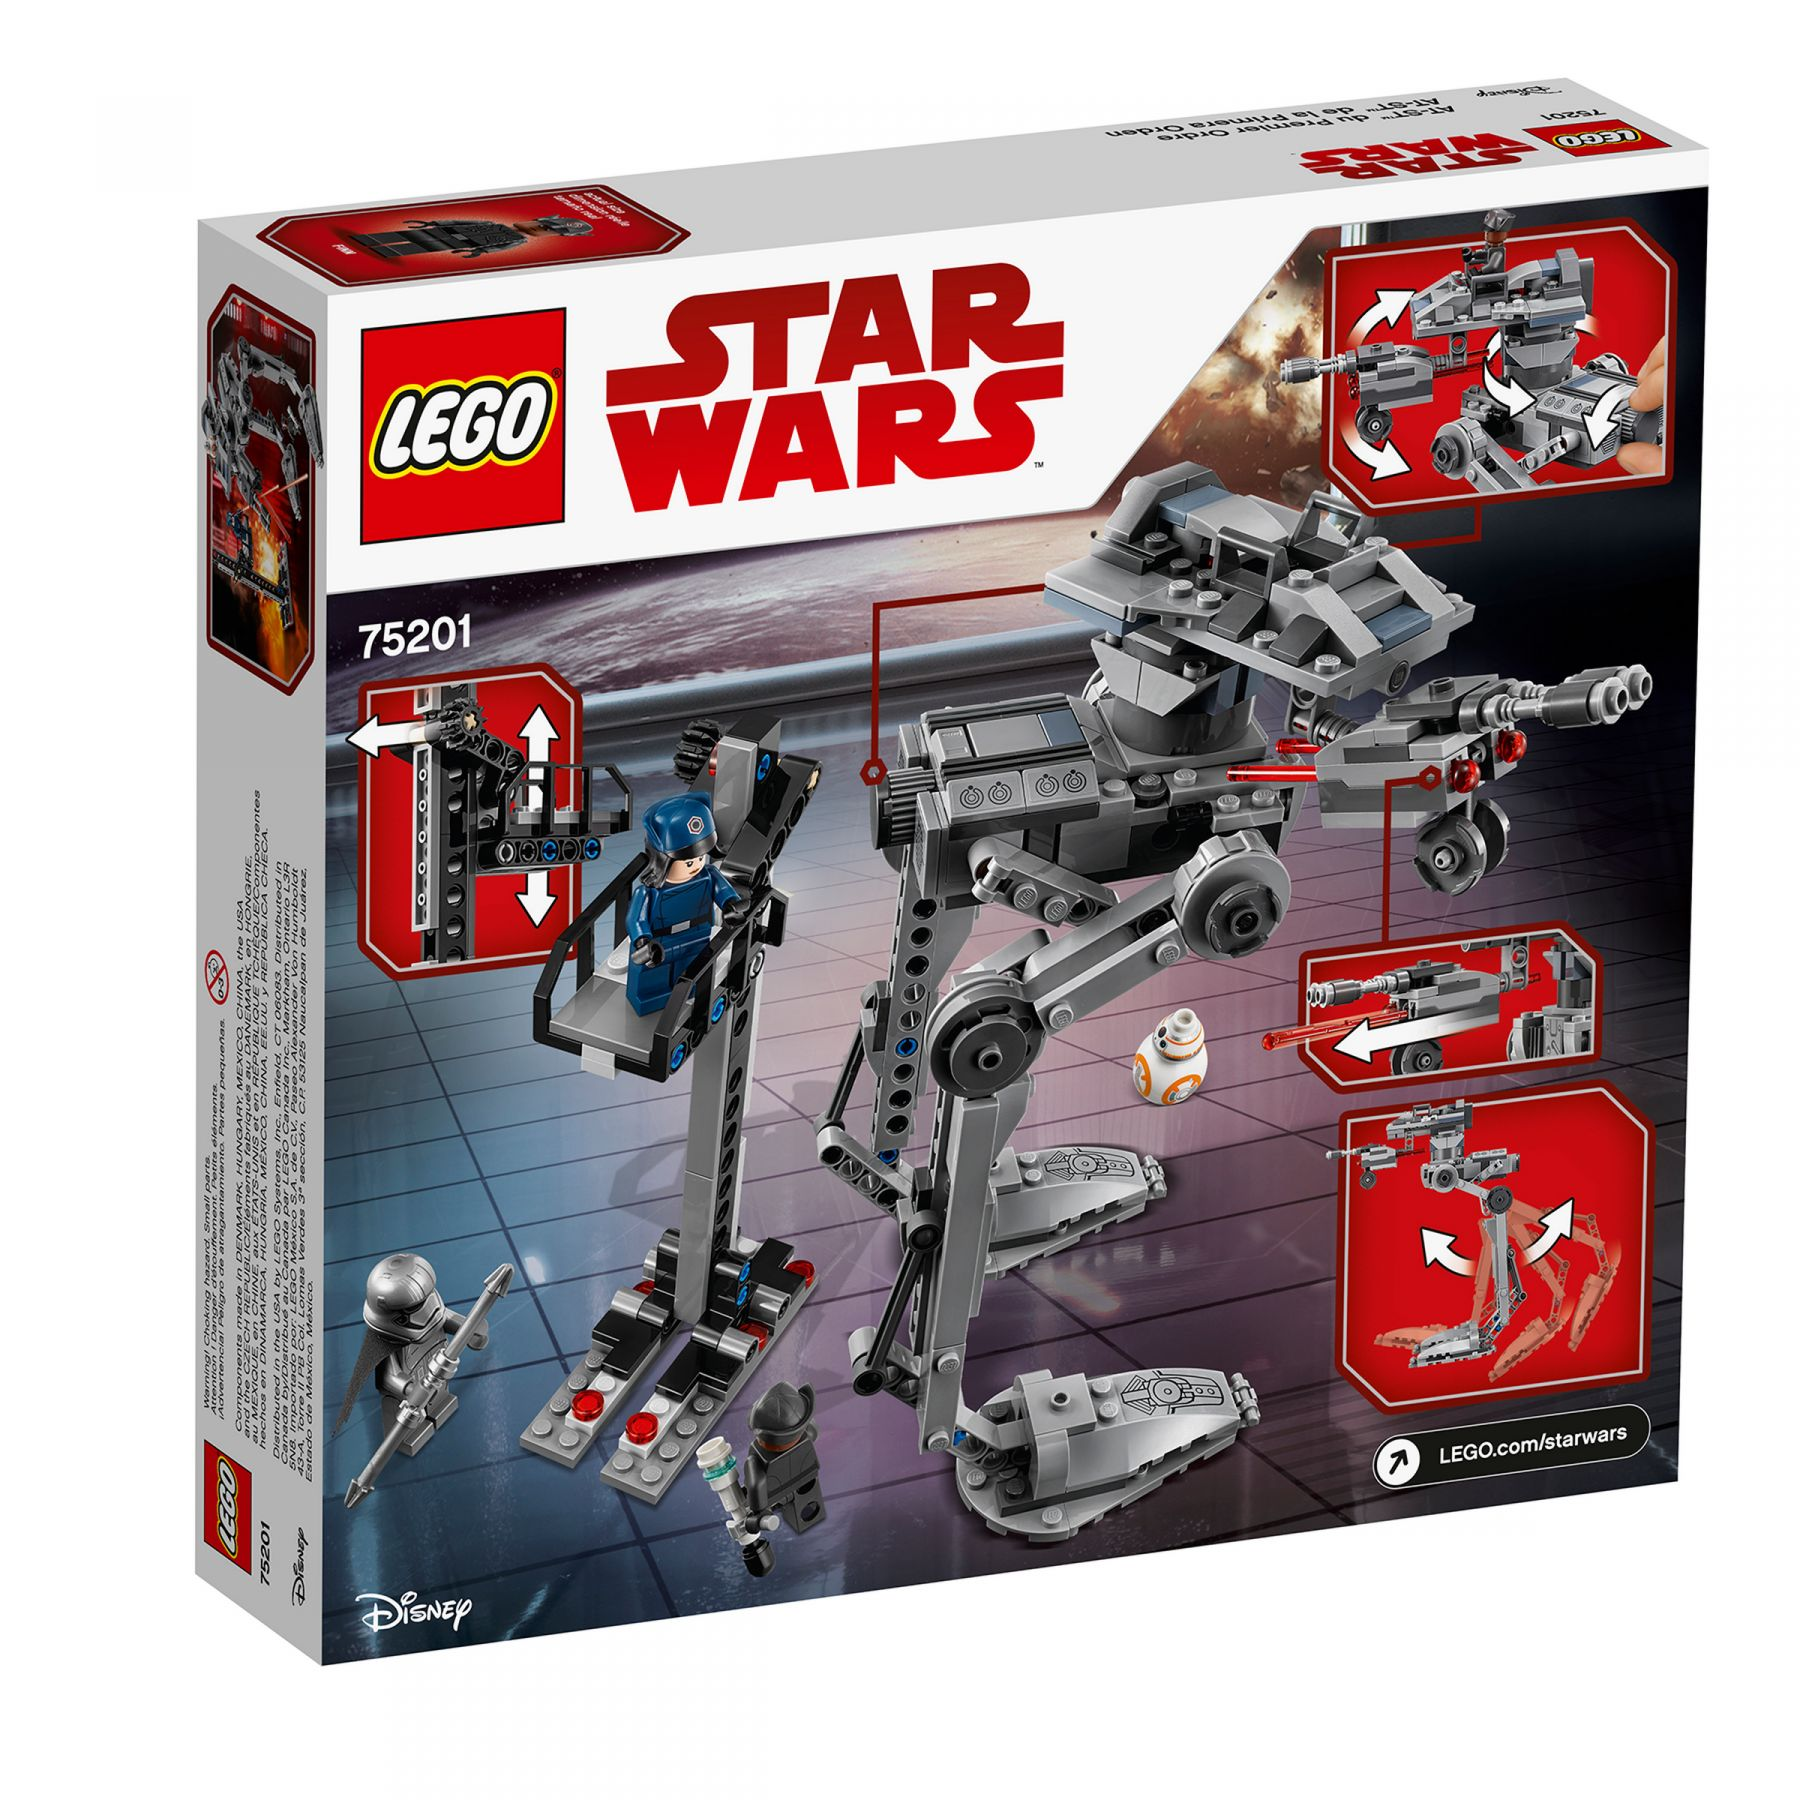 LEGO Star Wars 75201 First Order AT-ST™ LEGO_75201_alt6.jpg